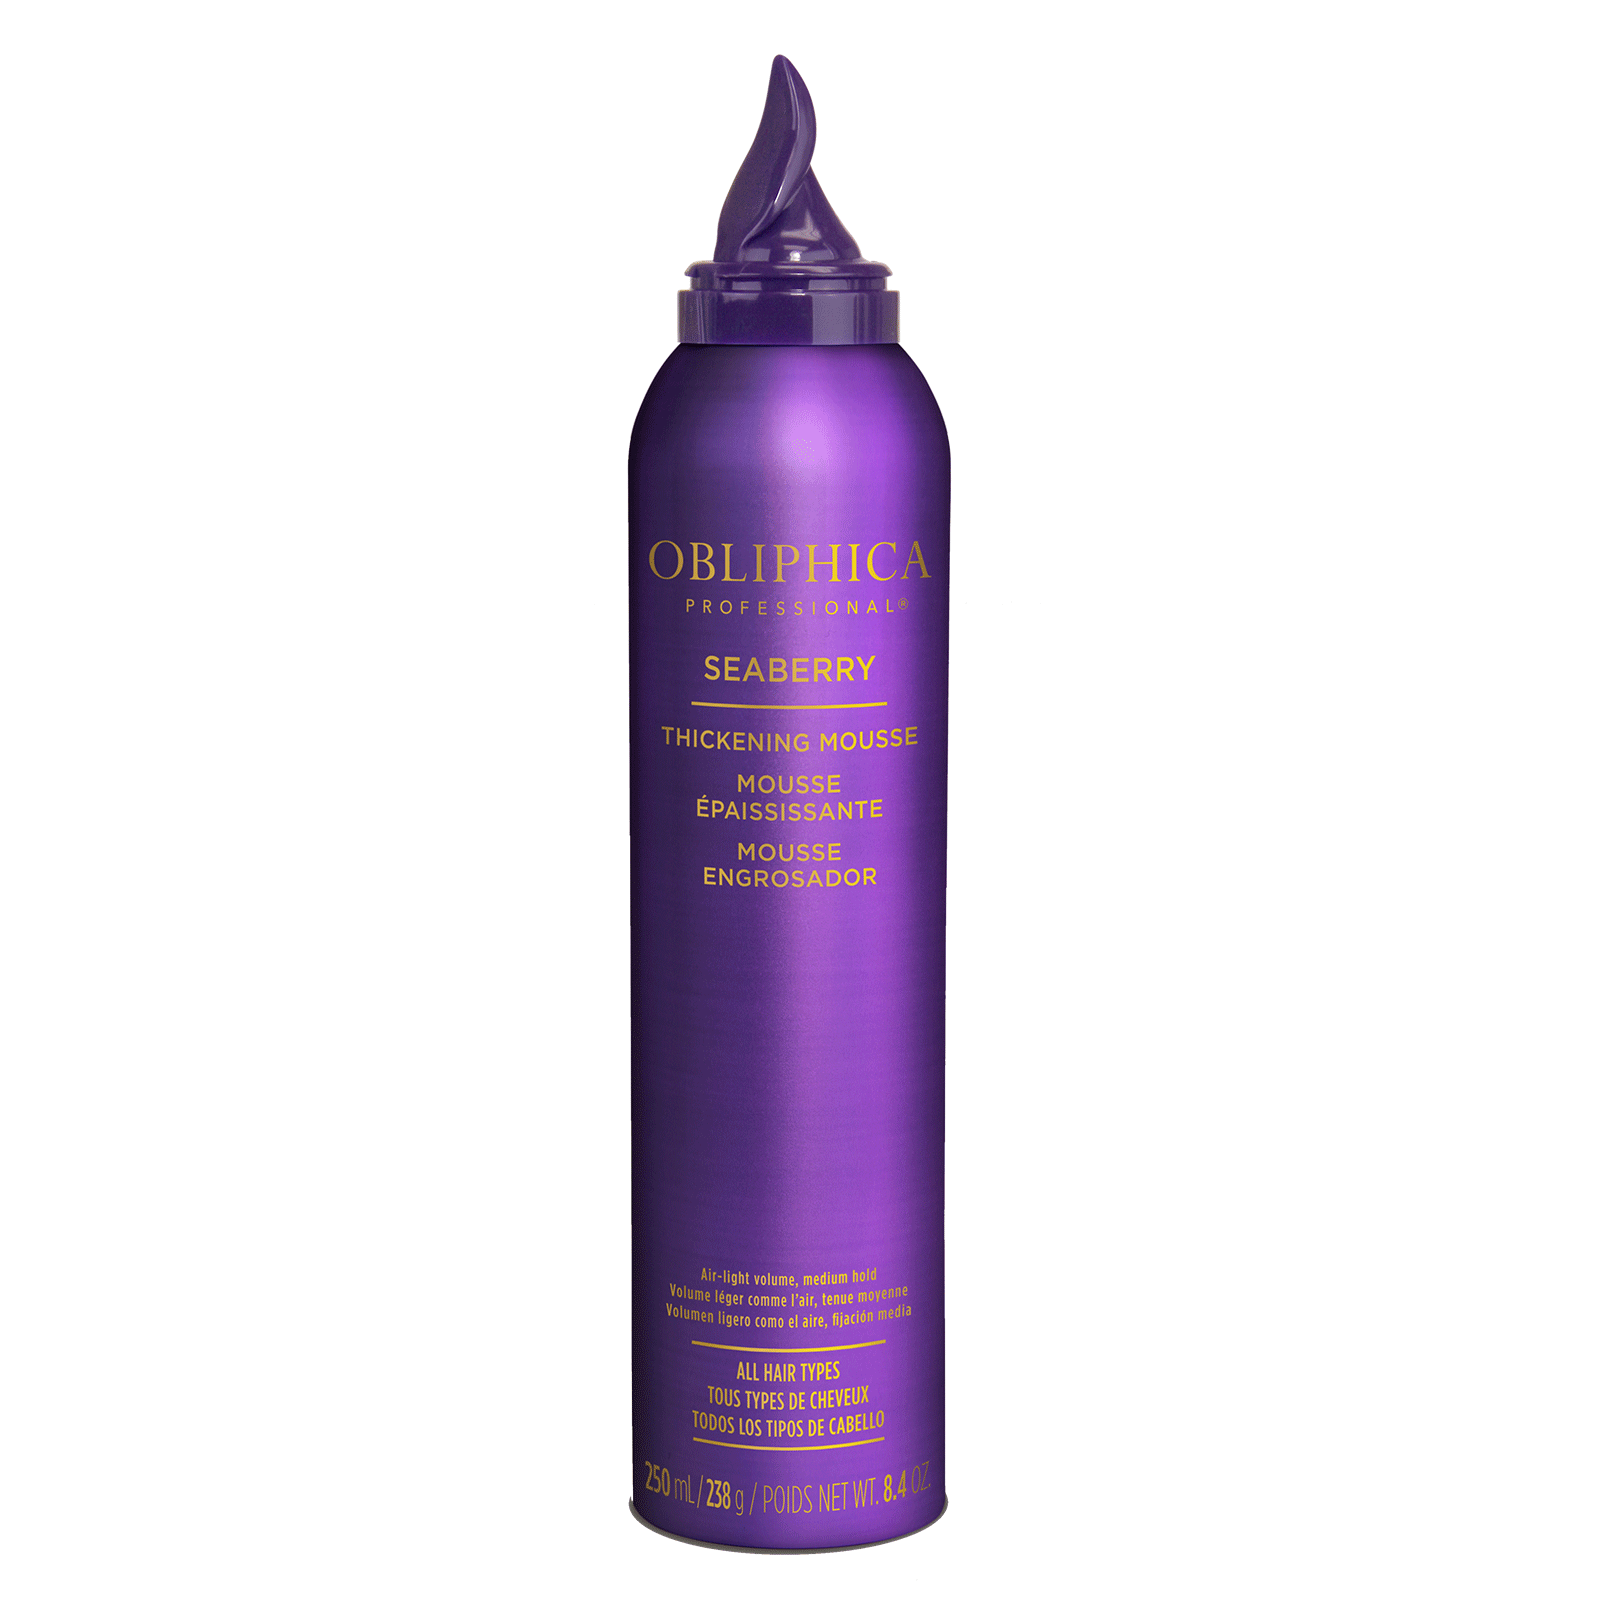 Obliphica Seaberry Thickening Mousse 8.4oz